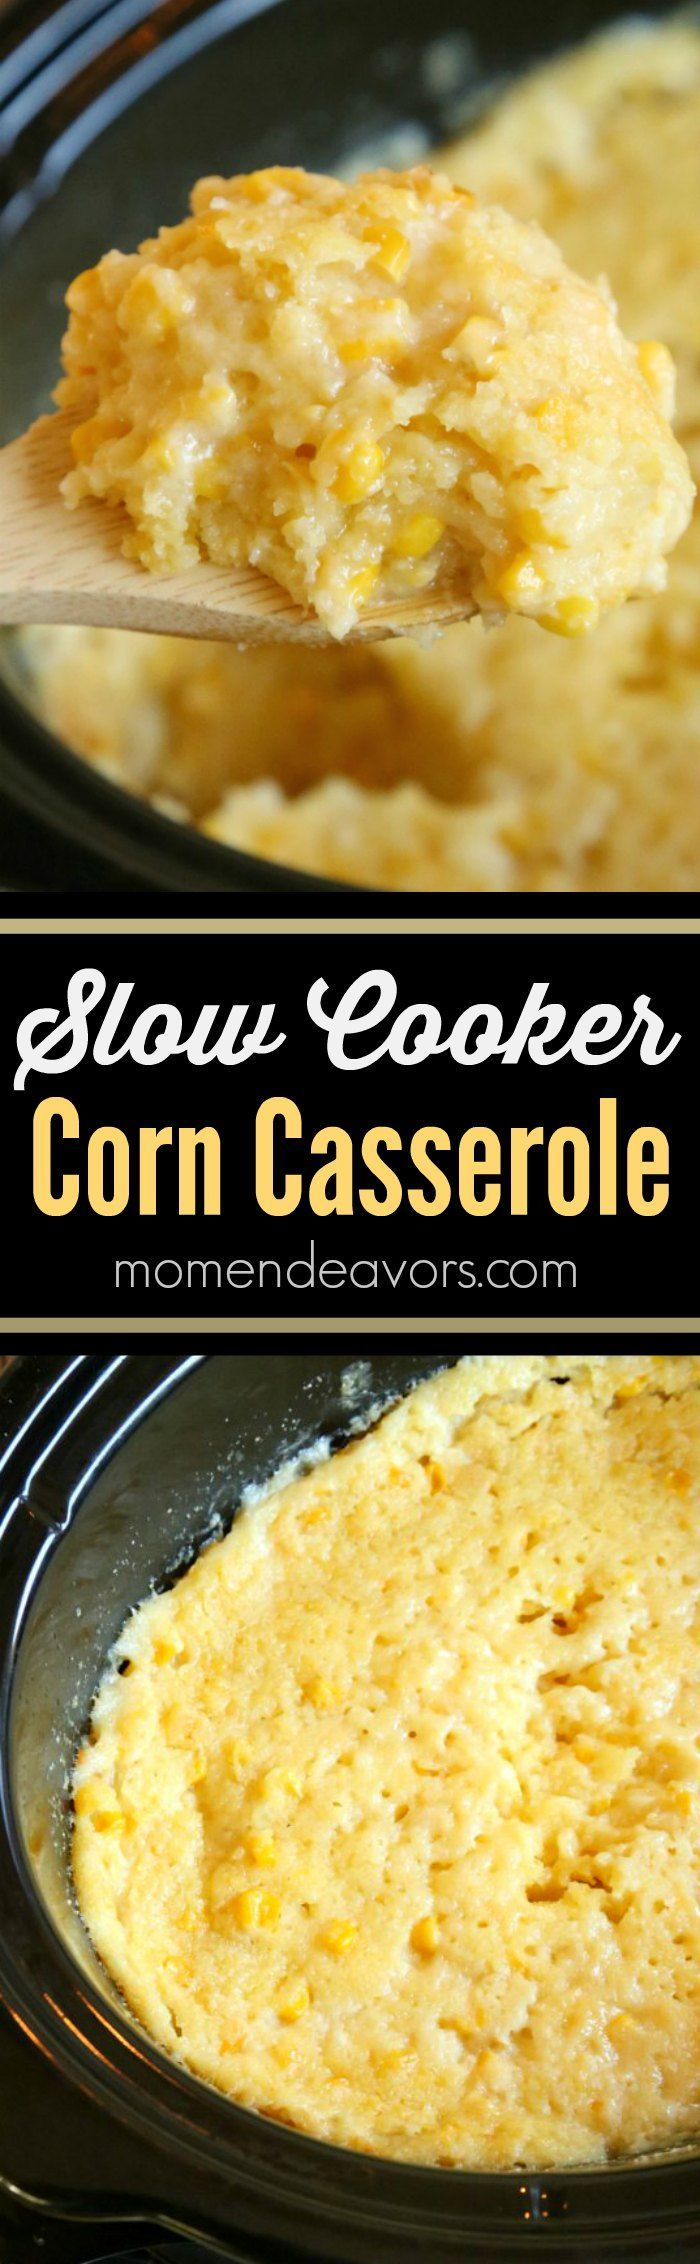 Easy Slow Cooker Corn Casserole - NTS: Maybe make patties and brown, briefly, after cooking in the slow cooker? Idk...